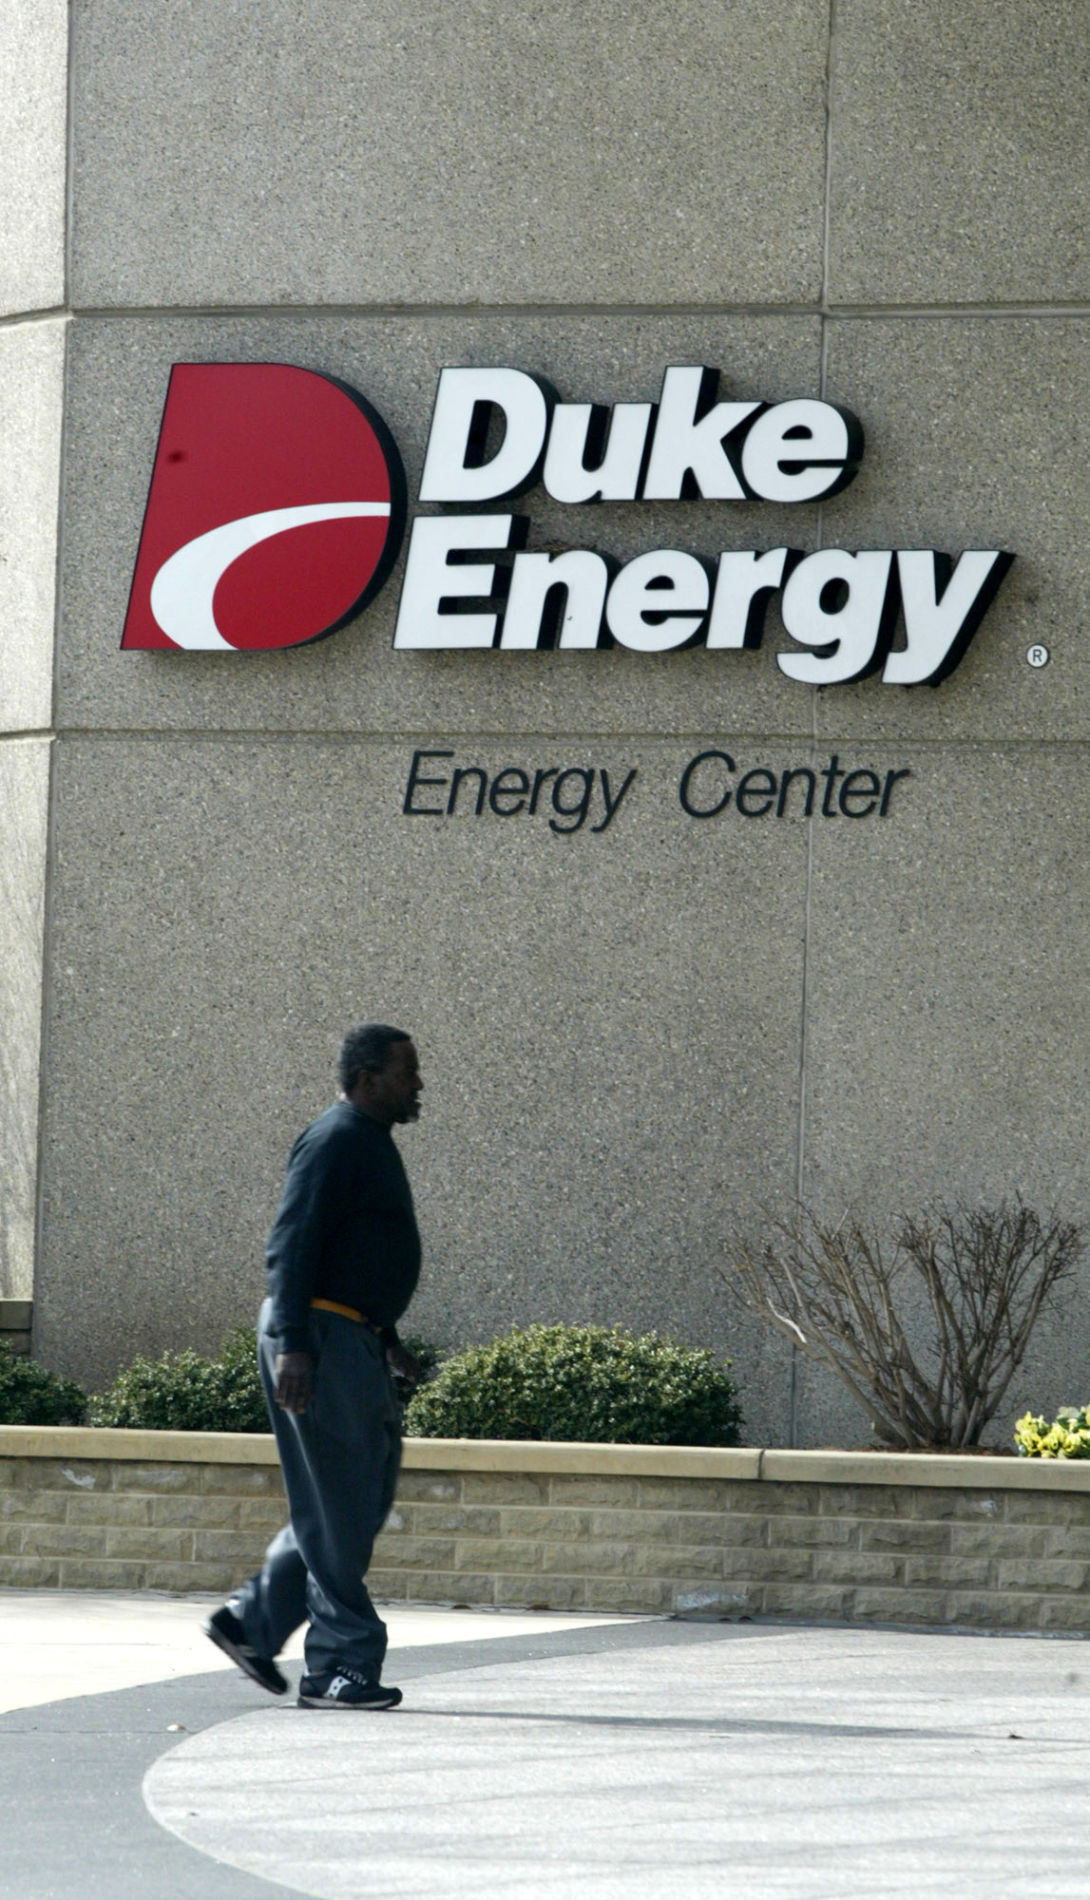 Church shooting prompts Duke Energy to invest in diversity programs